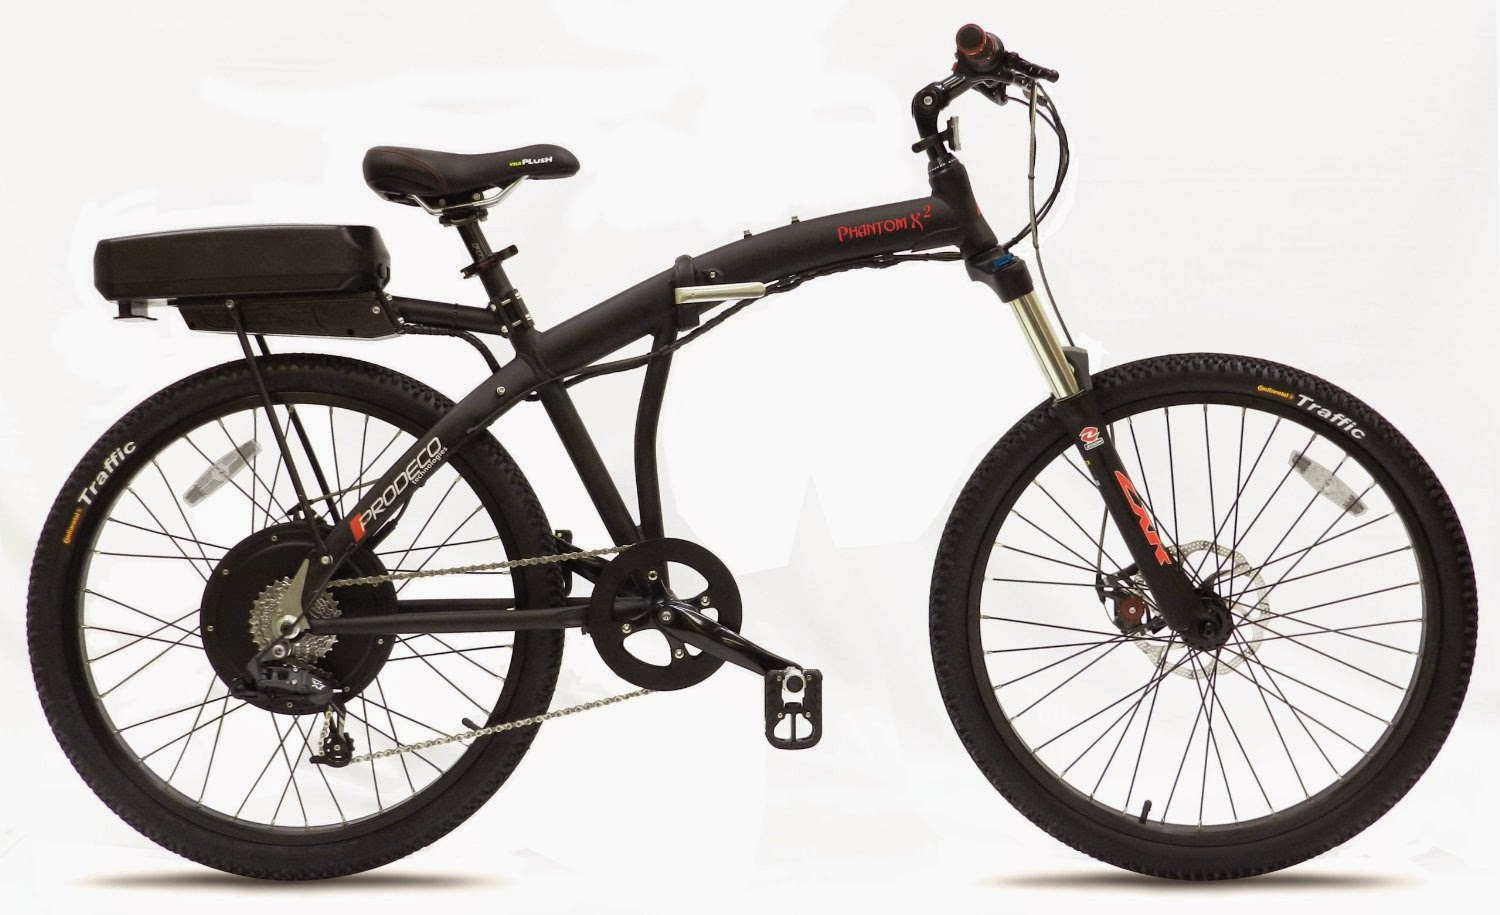 e bikes The massive arrival of e-bikes on streets around the globe has been as silent as the bikes themselves new aesthetic models appeal to an increasing number of professionals we'll look into the reasons why this market is booming.